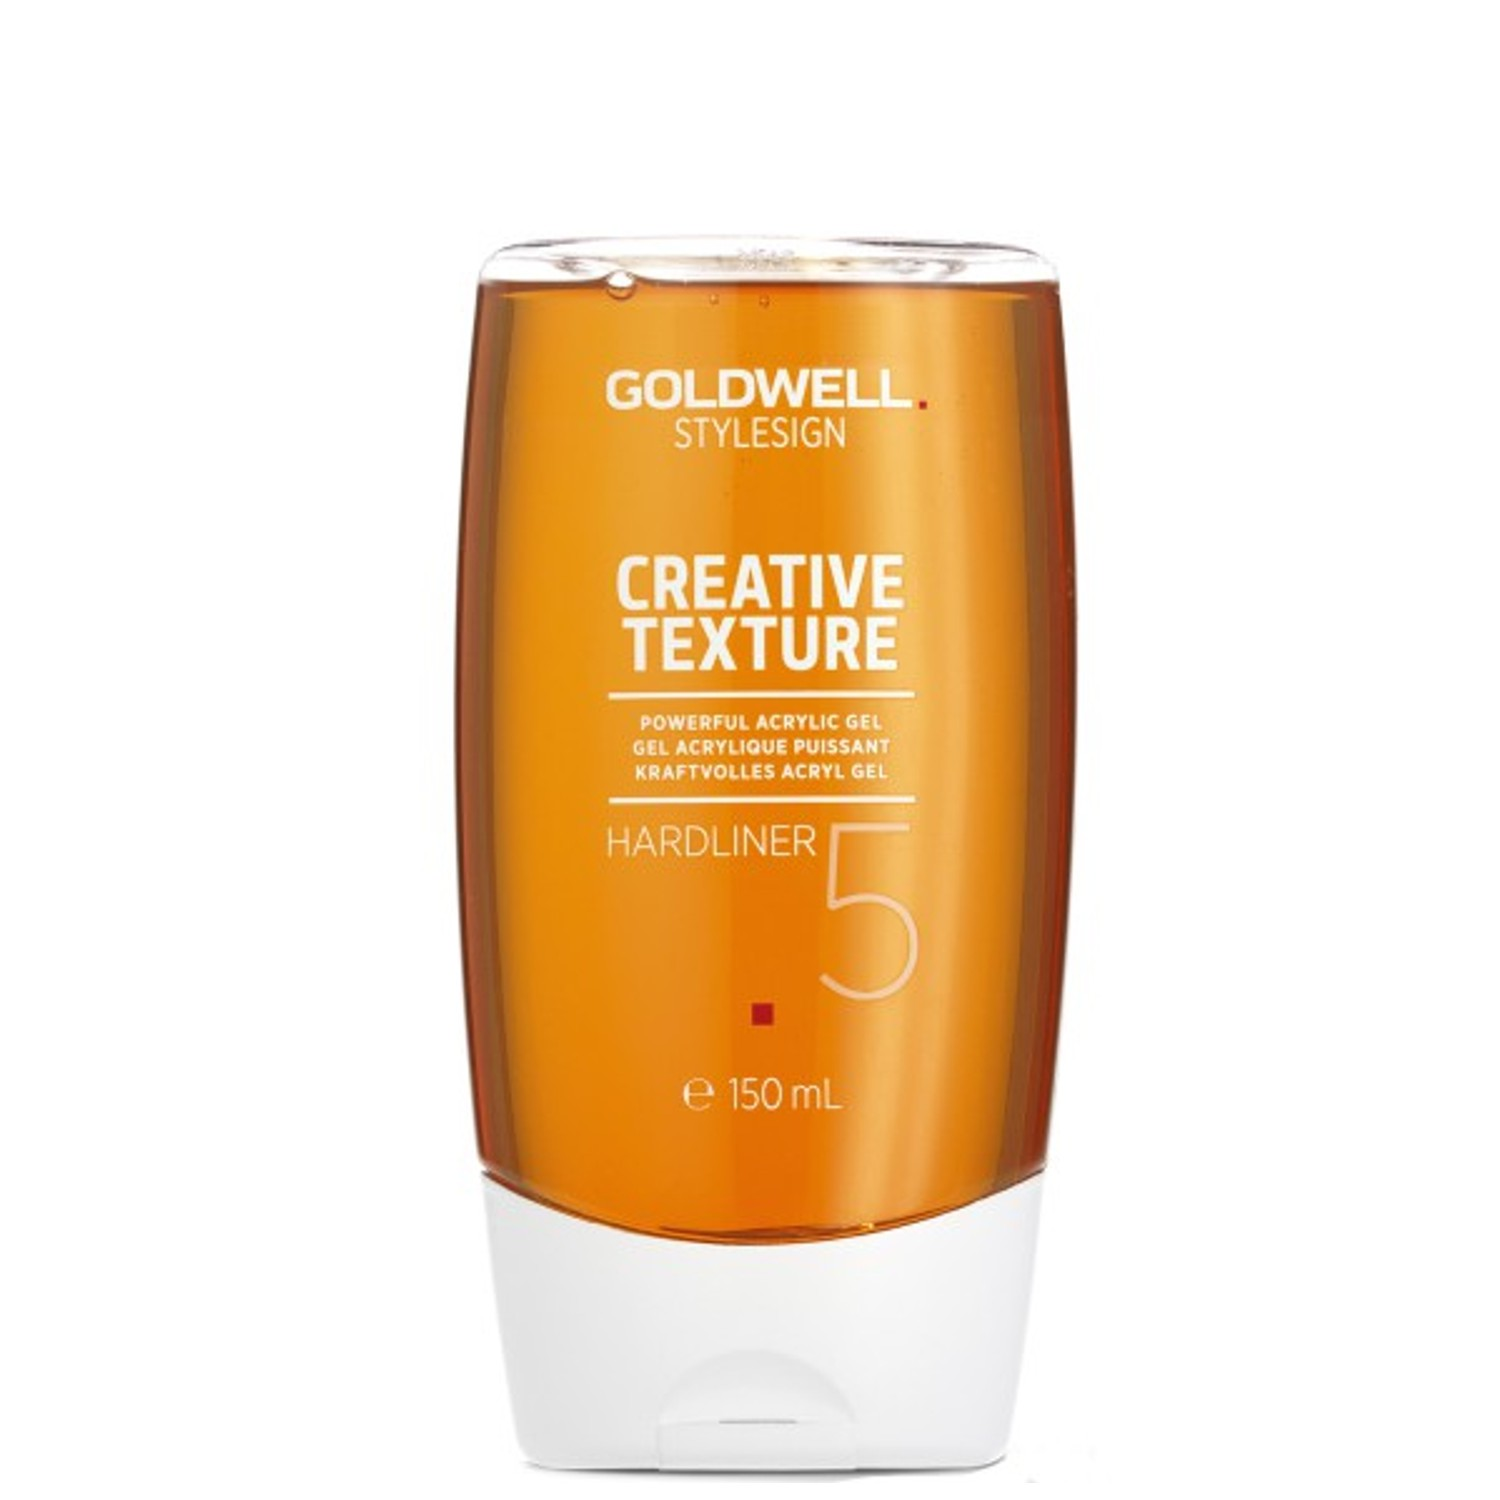 GOLDWELL Style Sign Creative Texture HARDLINER 150 ml